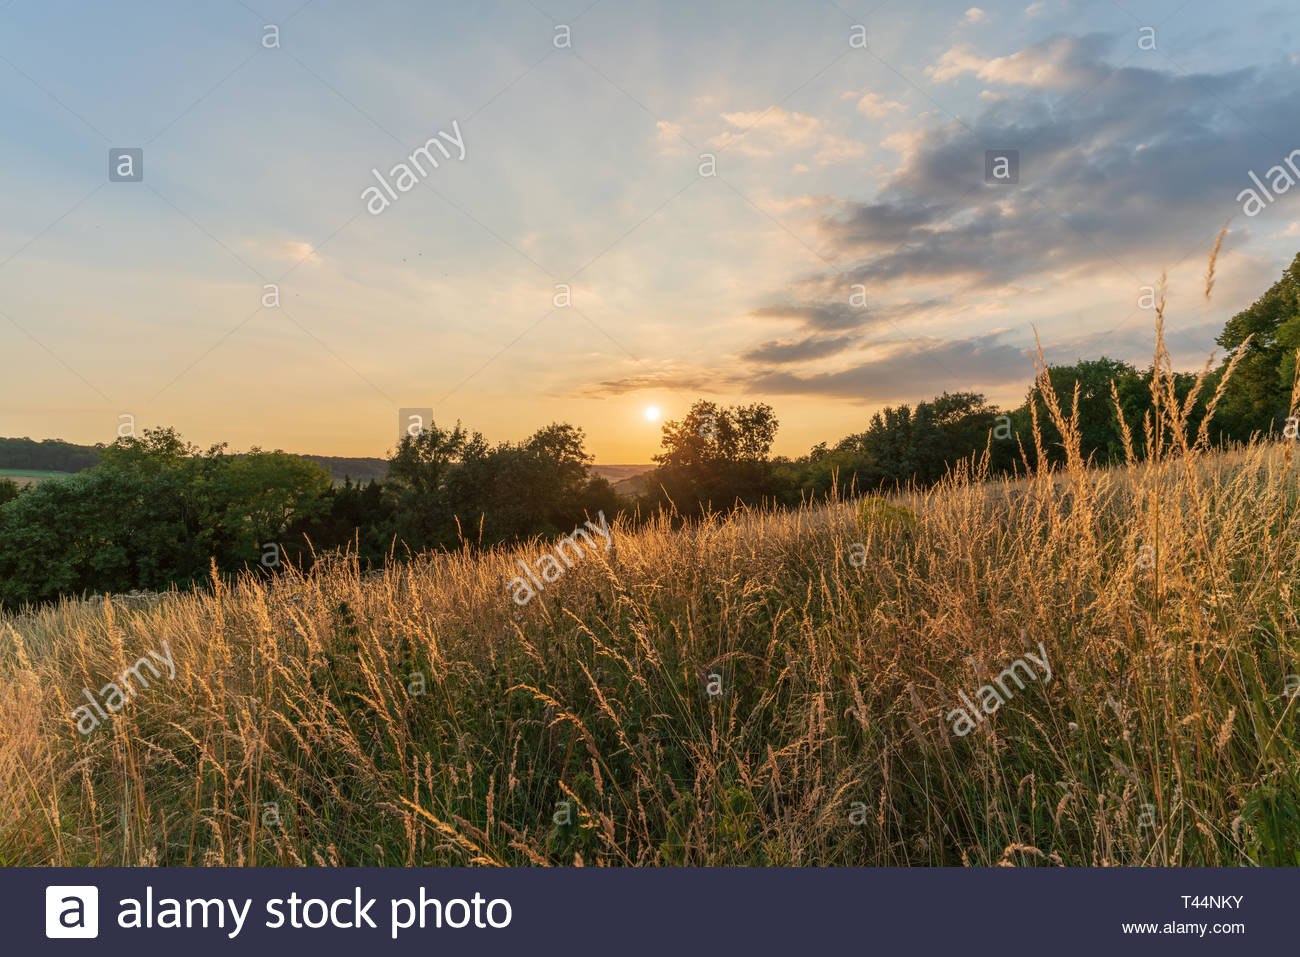 Countryside of the Chiltern Hills in England at sunset Stock Photo